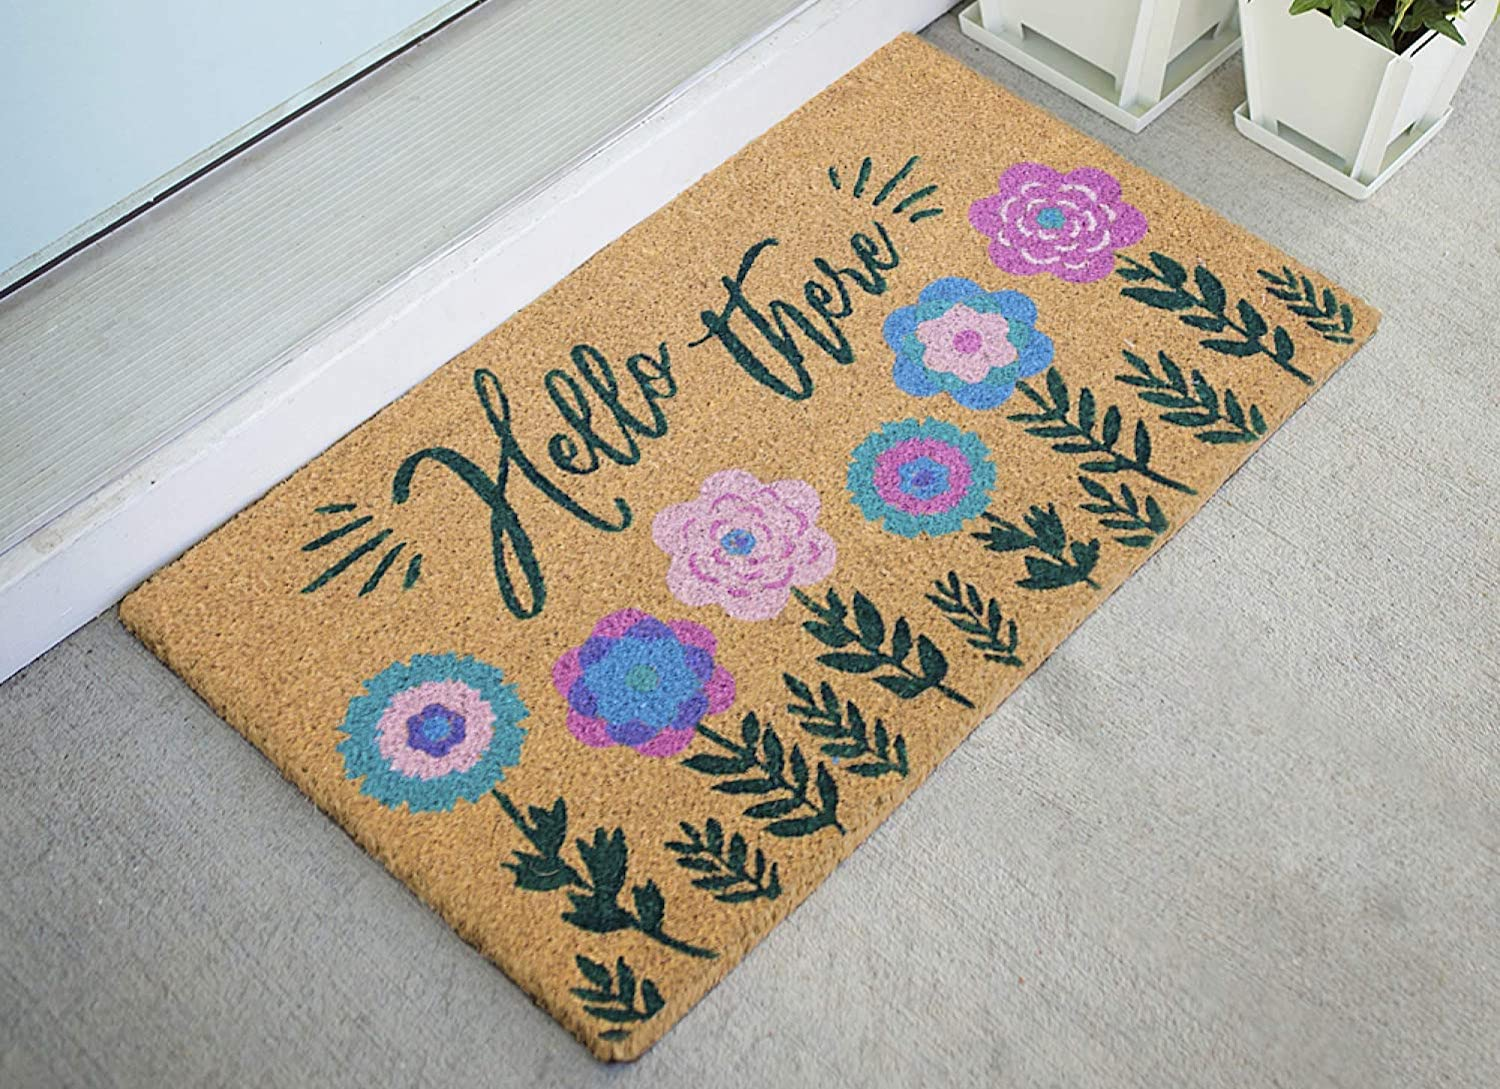 """A welcome mat reading """"hello there"""" in script, with purple and blue flowers along the bottom edge"""